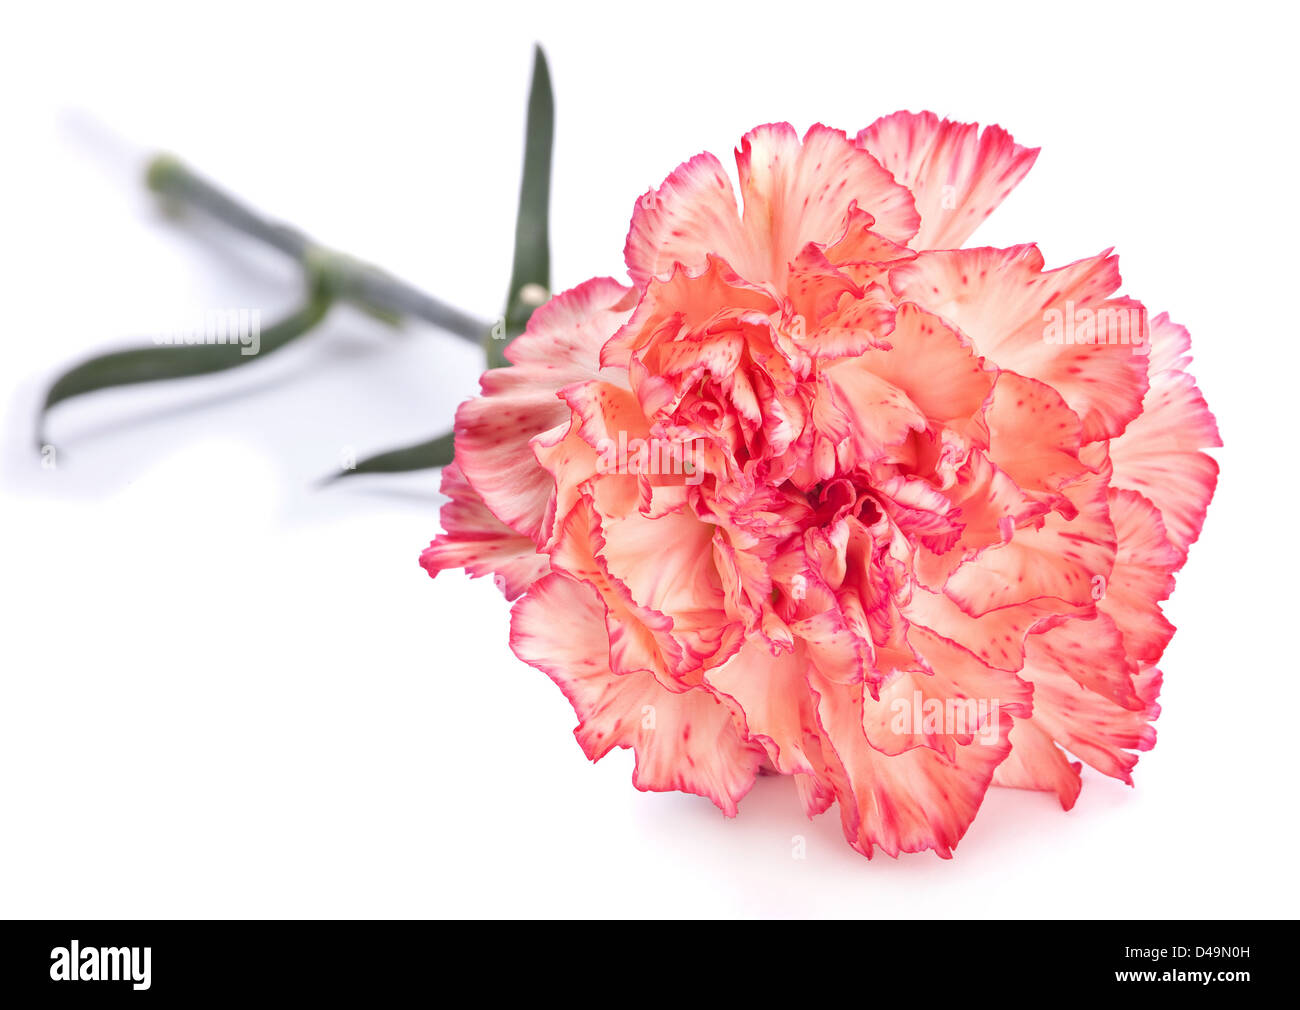 Pink carnation flower closeup on white - Stock Image